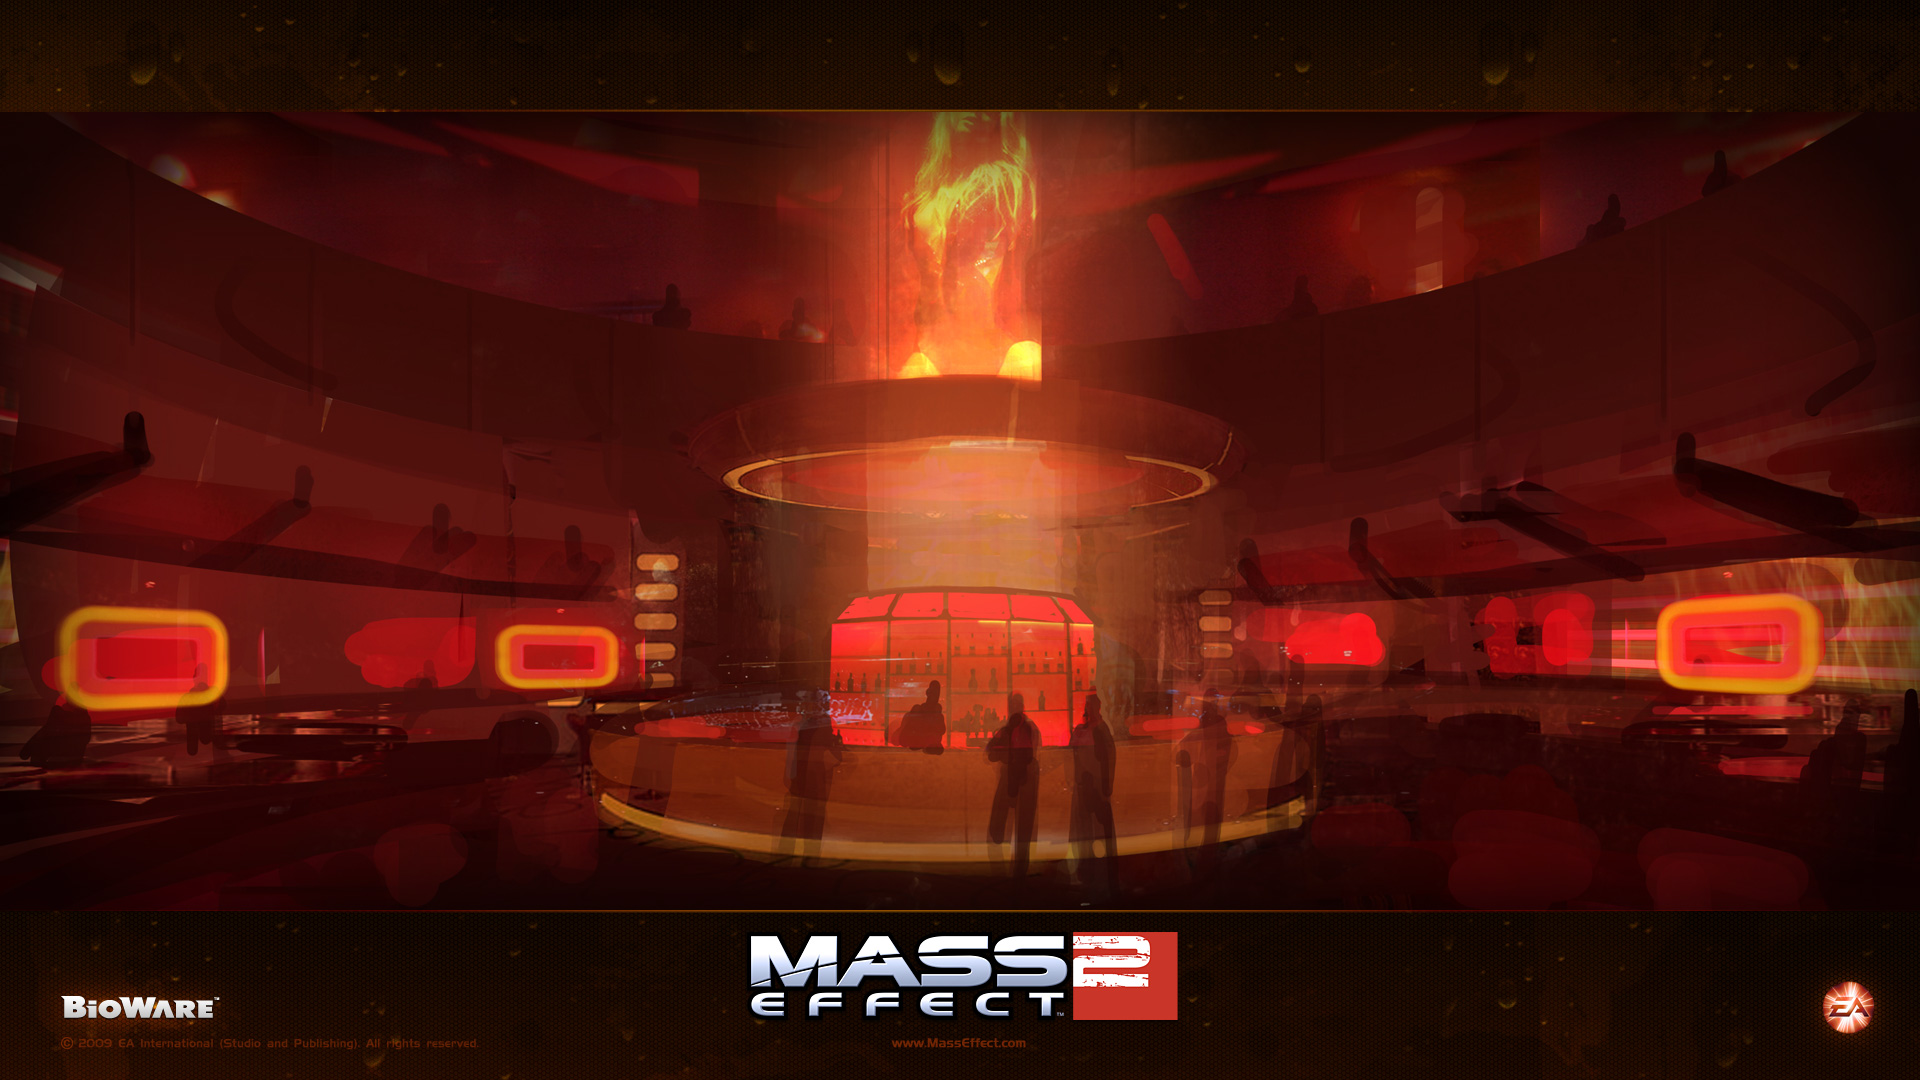 fond ecran, wallpaper mass effect  jeuxvideo.fr